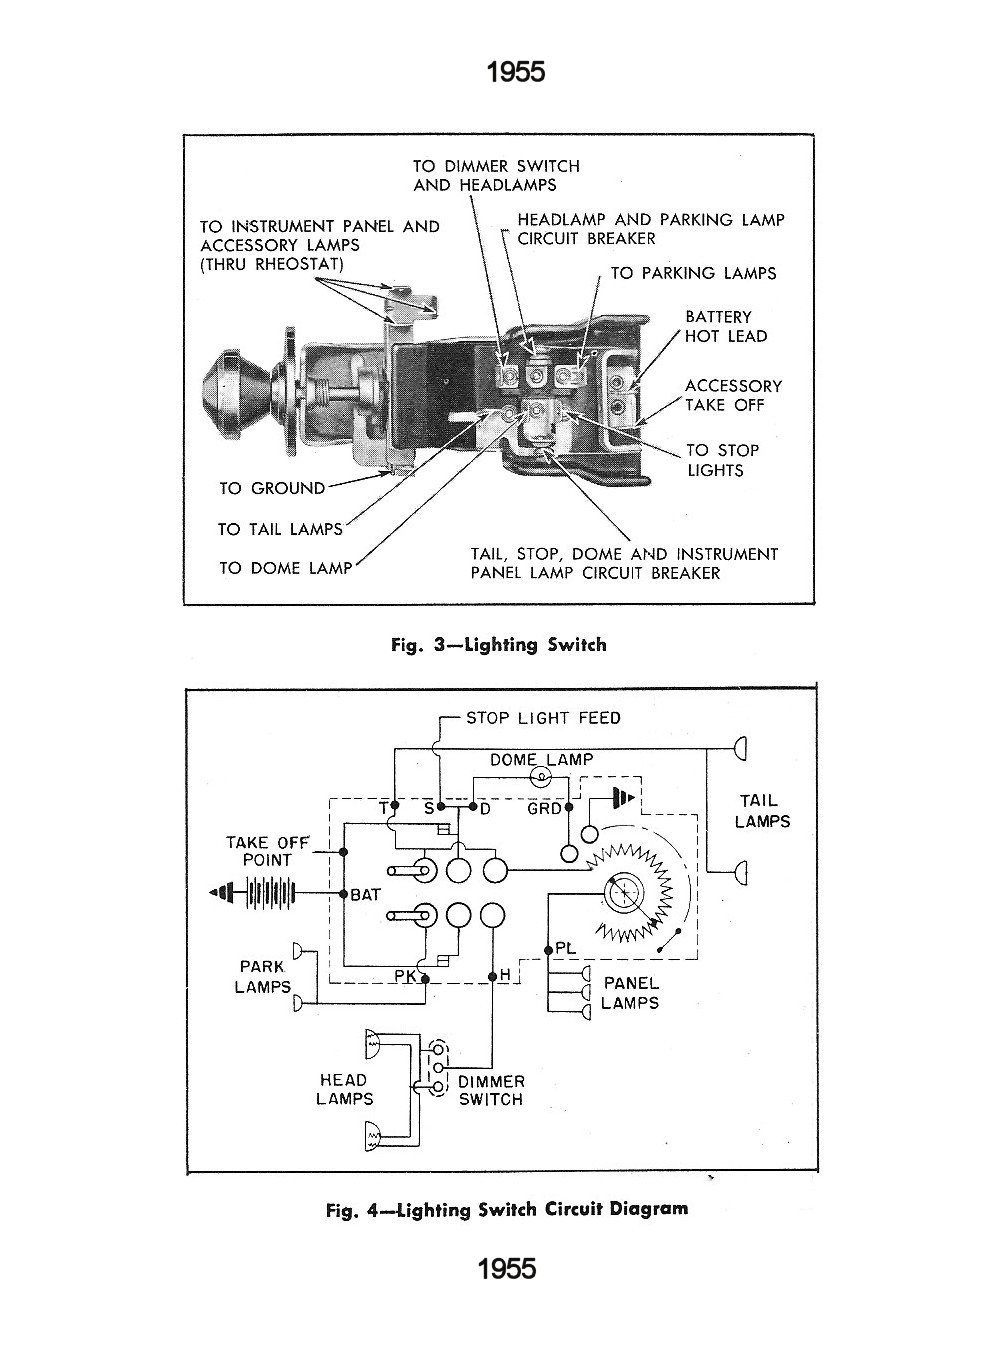 1955 lighting switch & circuit